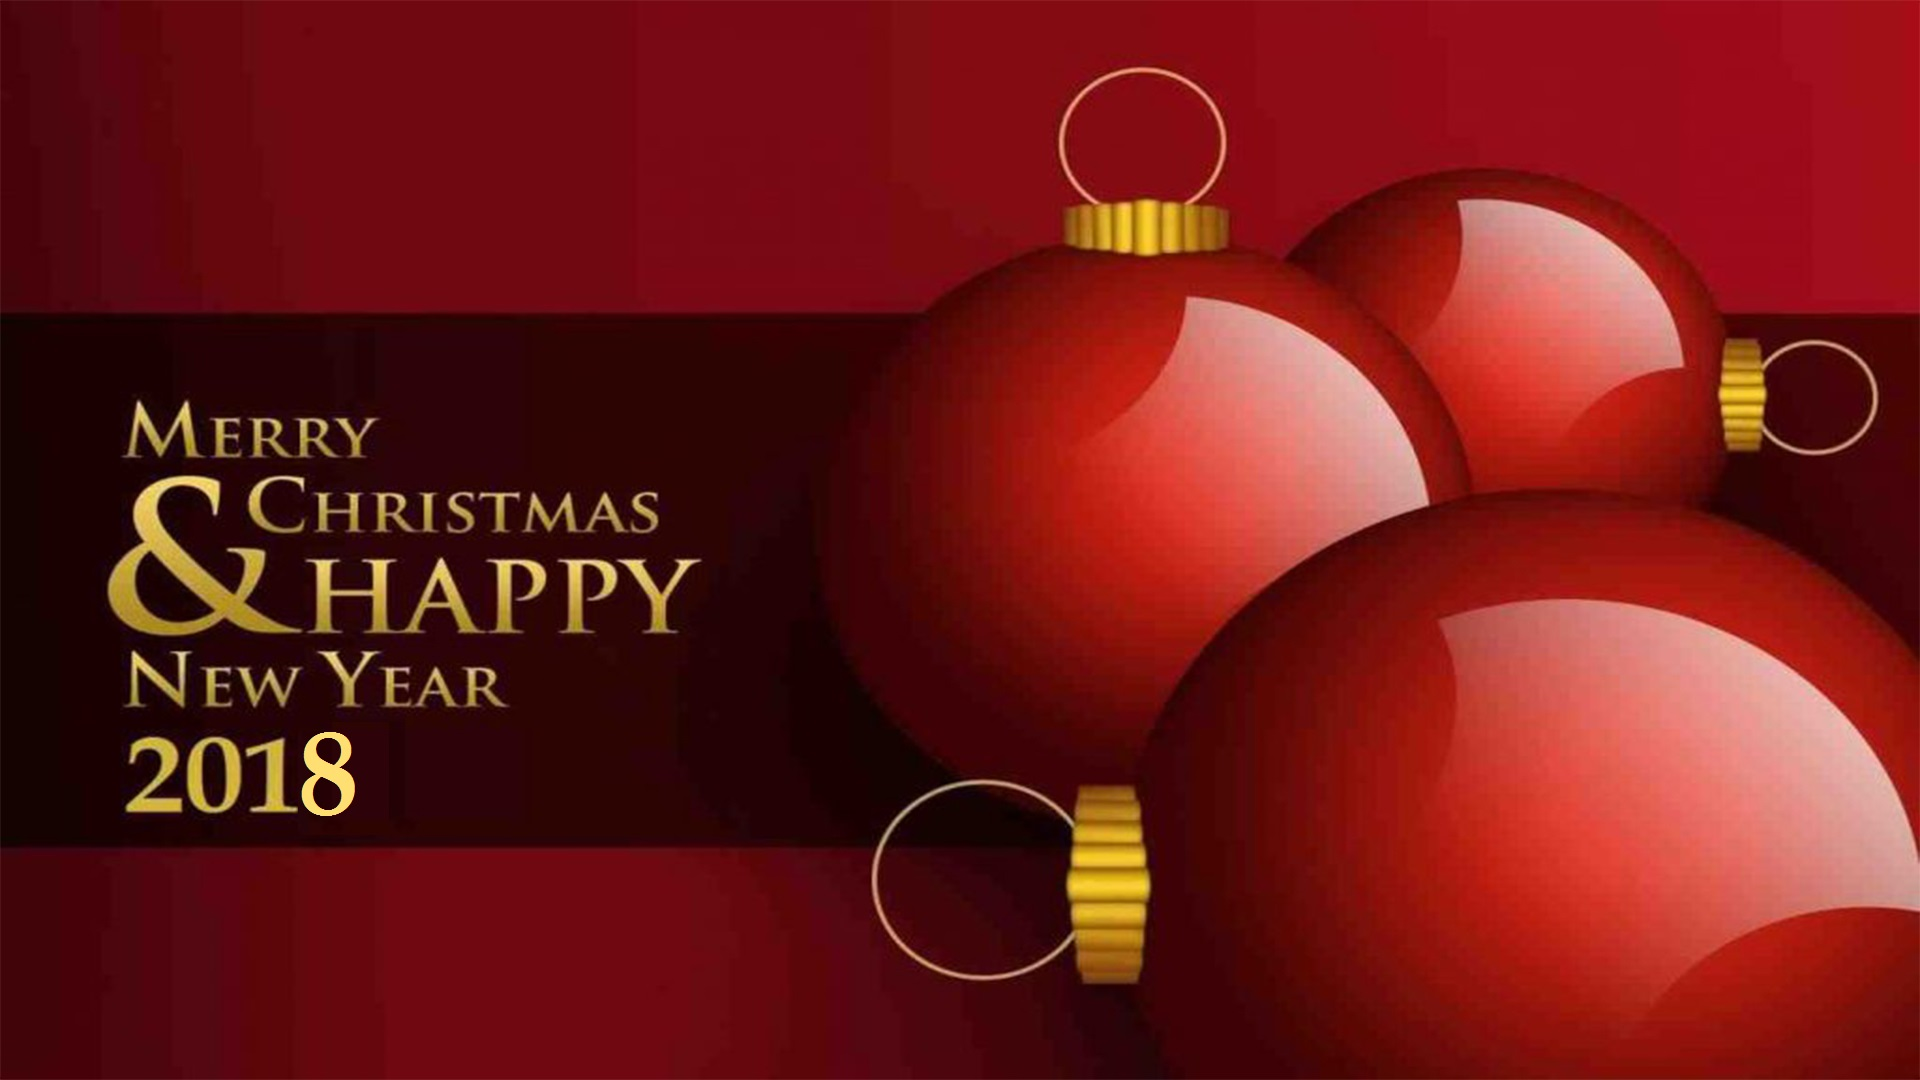 merry christmas happy new year 2018 images hd pictures